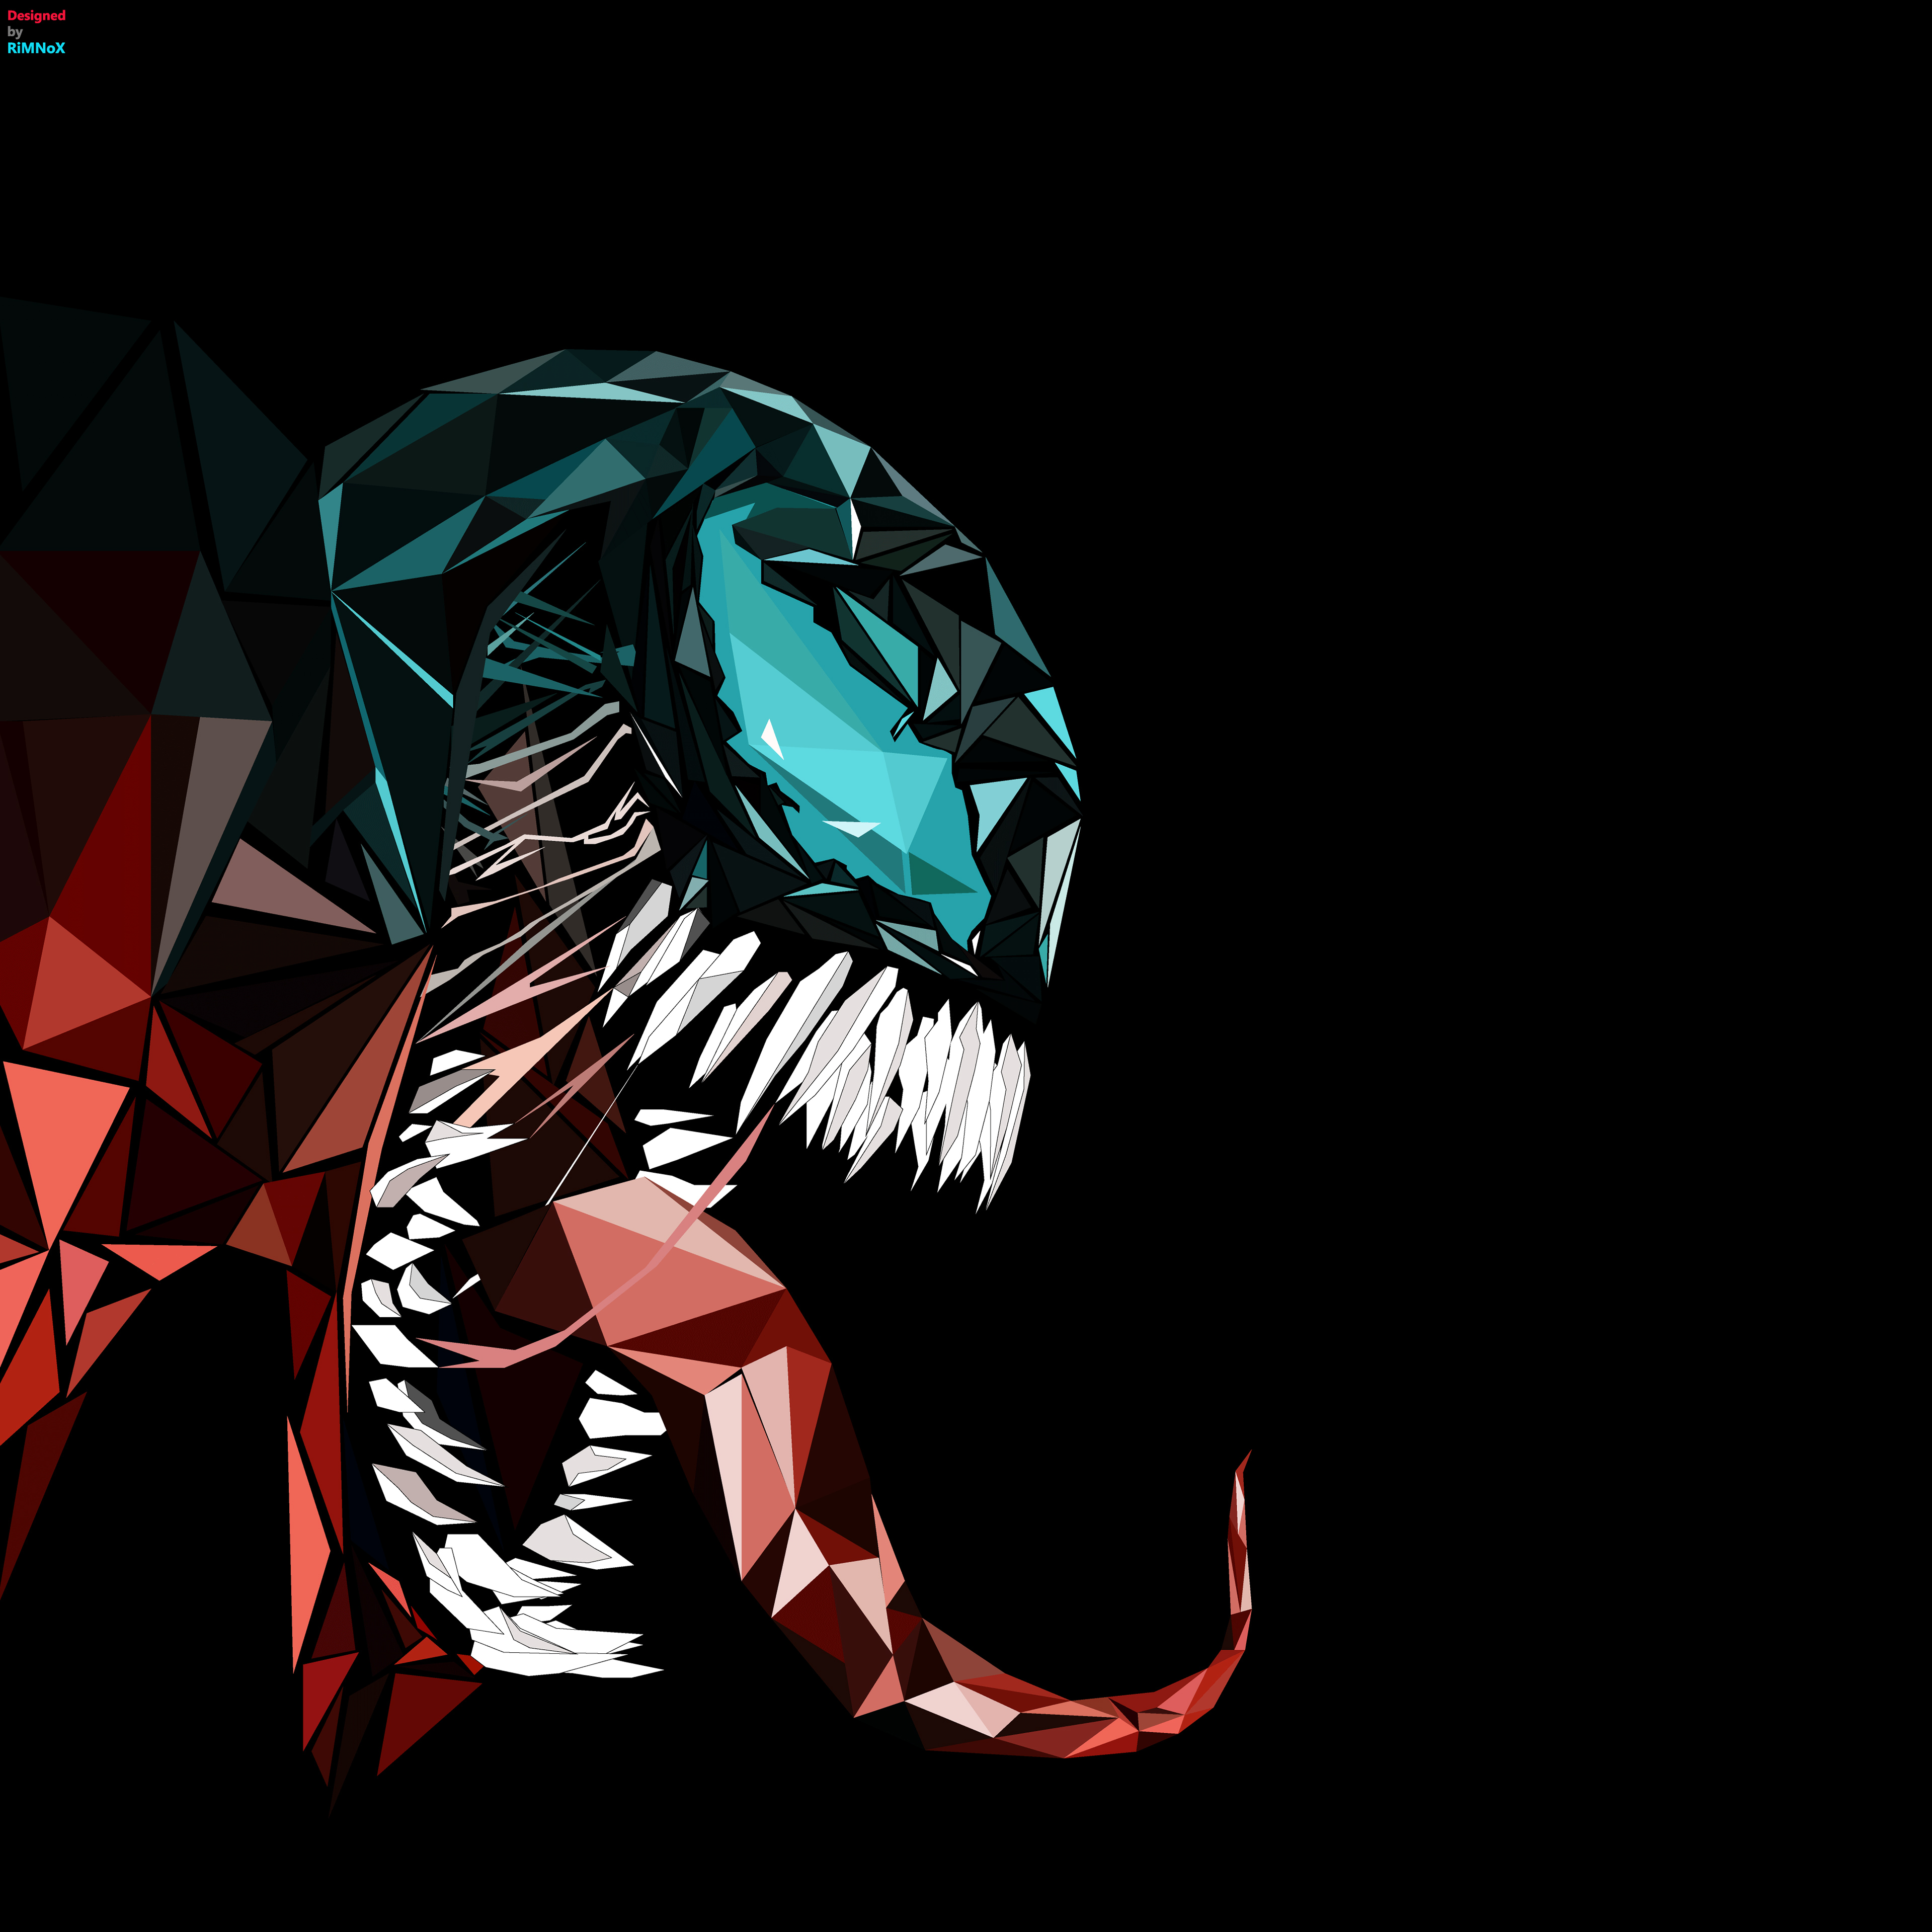 1920x1080 Venom Abstract 4k Laptop Full HD 1080P HD 4k